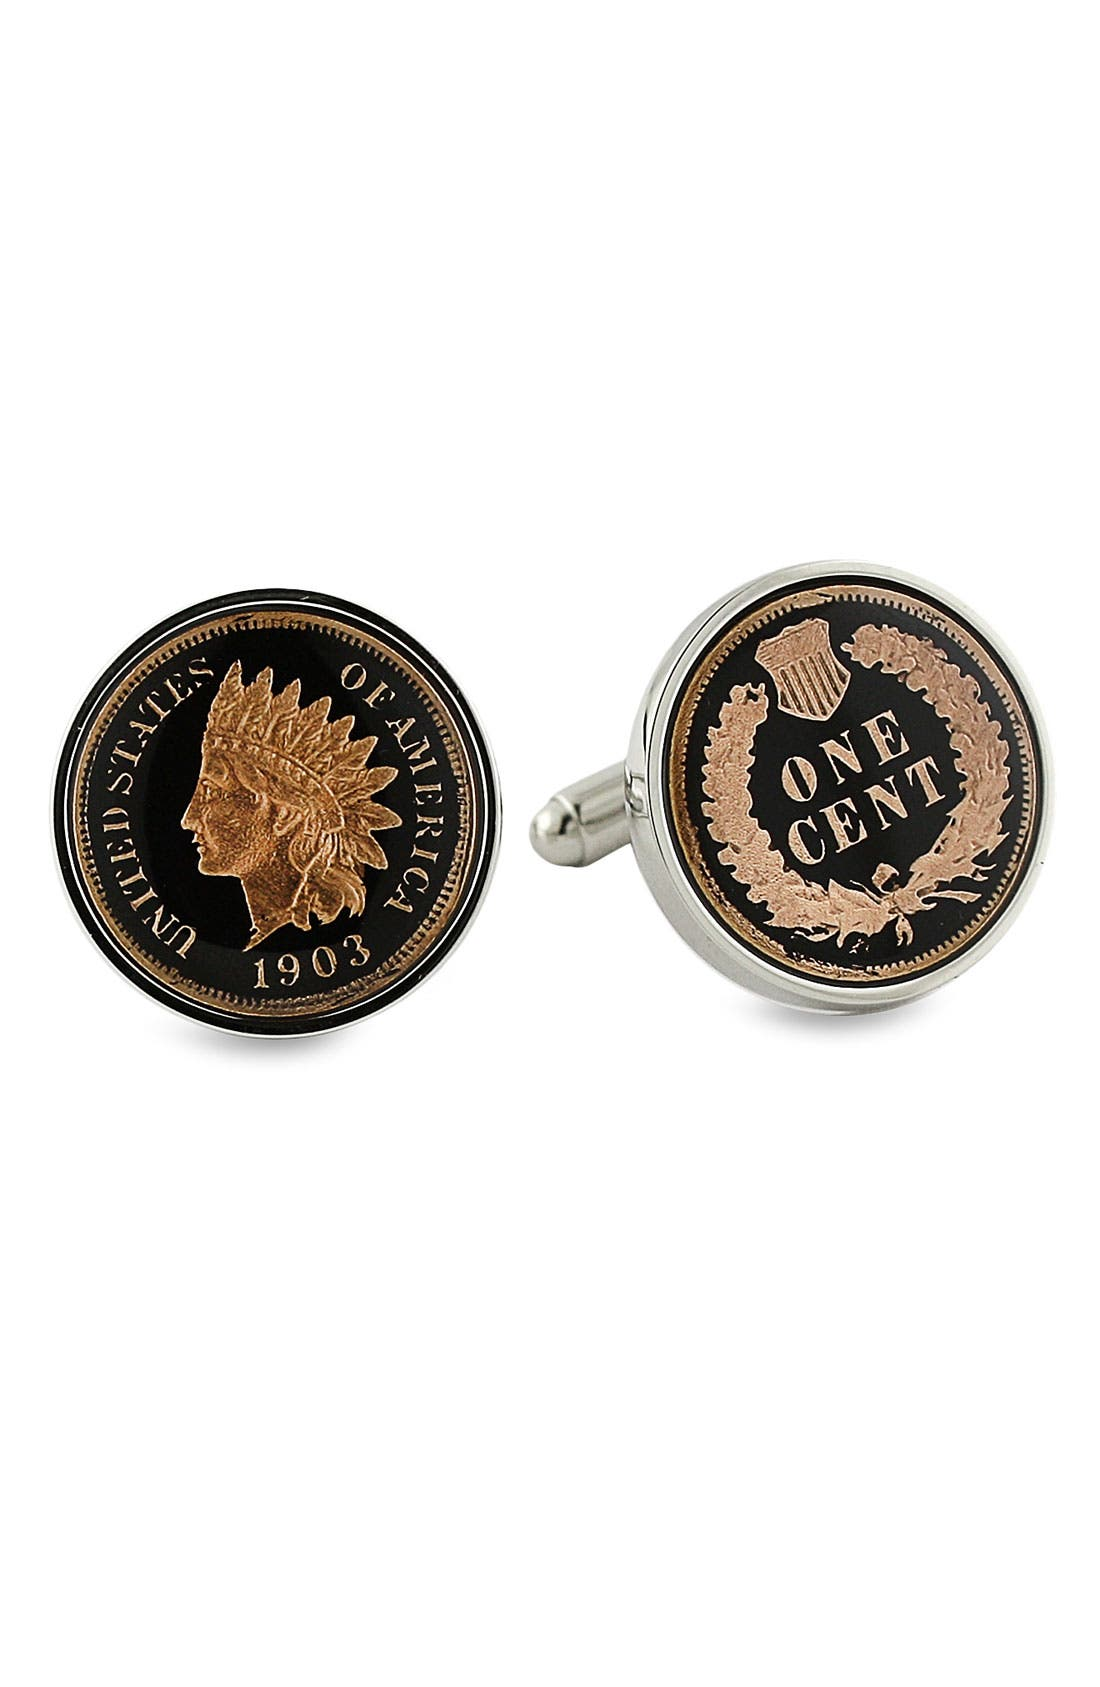 Alternate Image 1 Selected - David Donahue 'Collector Coin' Cuff Links